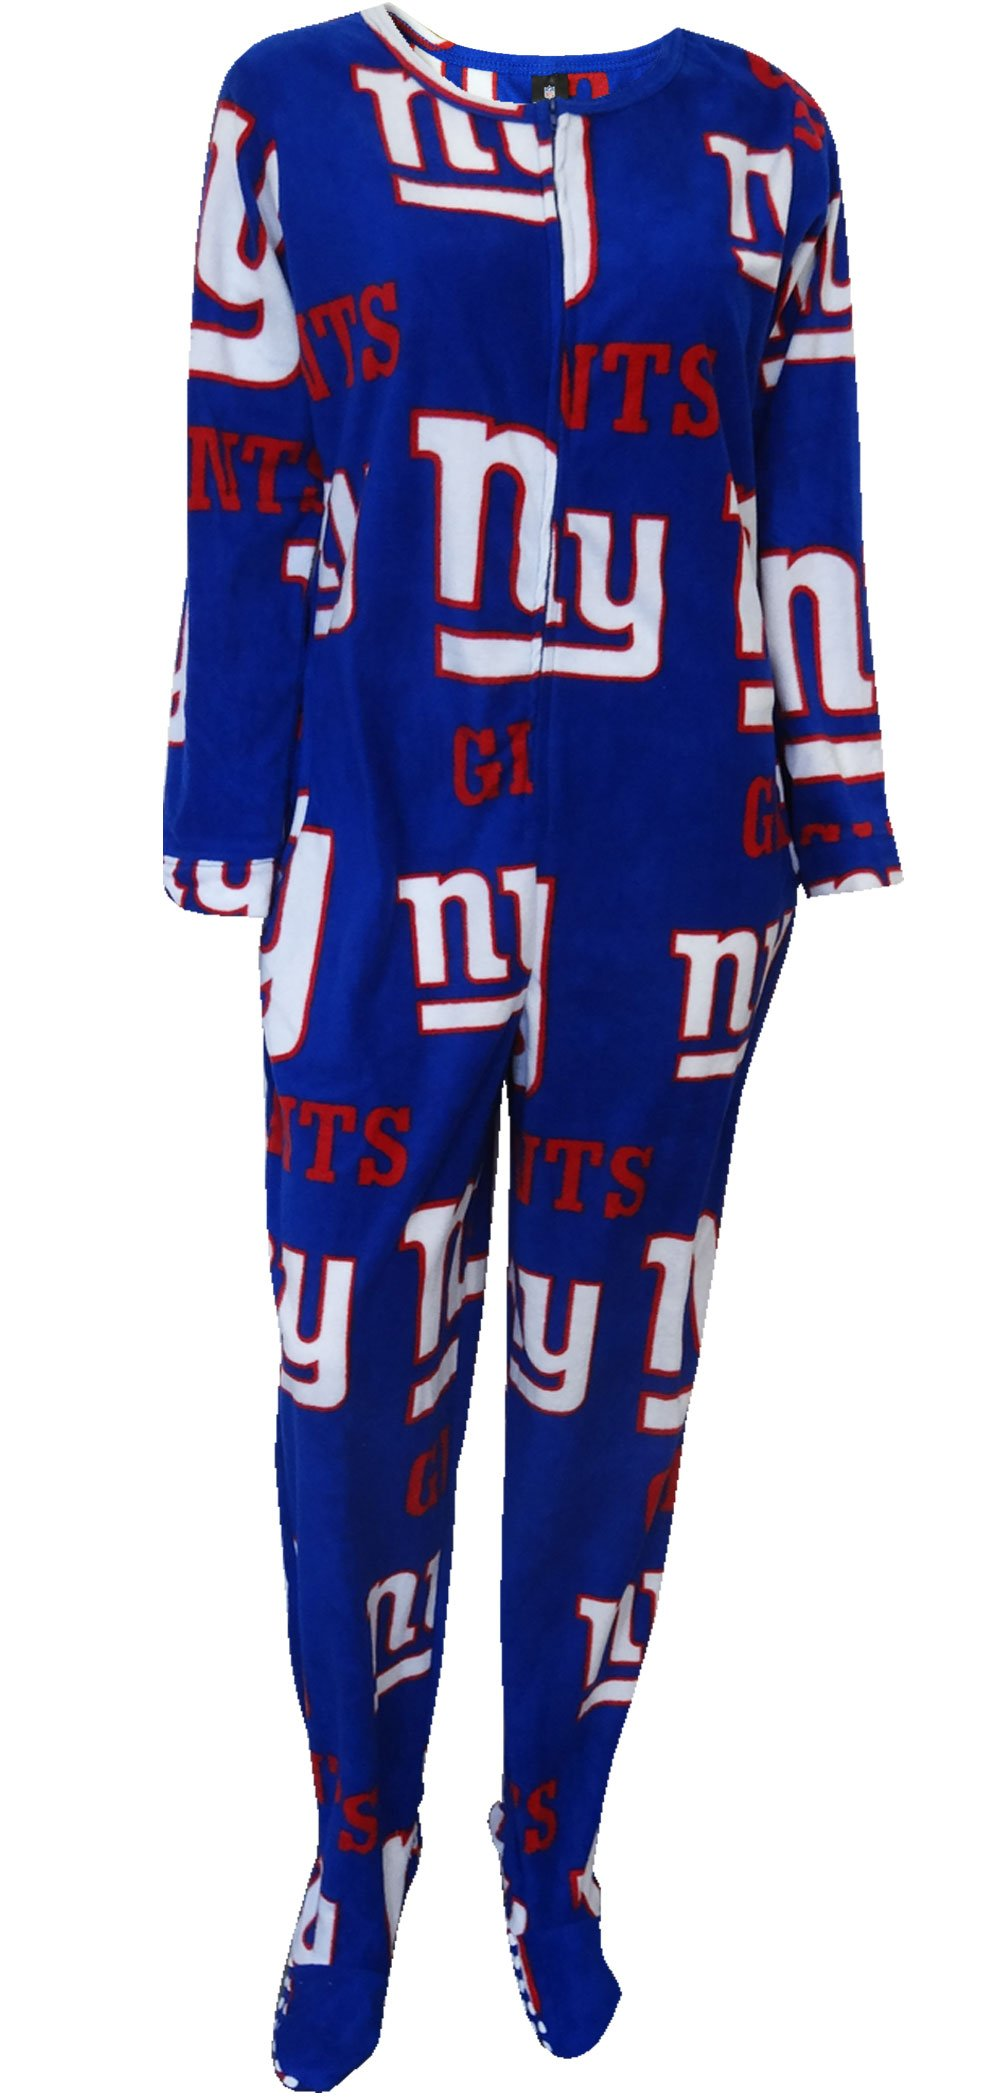 New York Giants Womens Royal Blue Onesie Footie Pajama for women